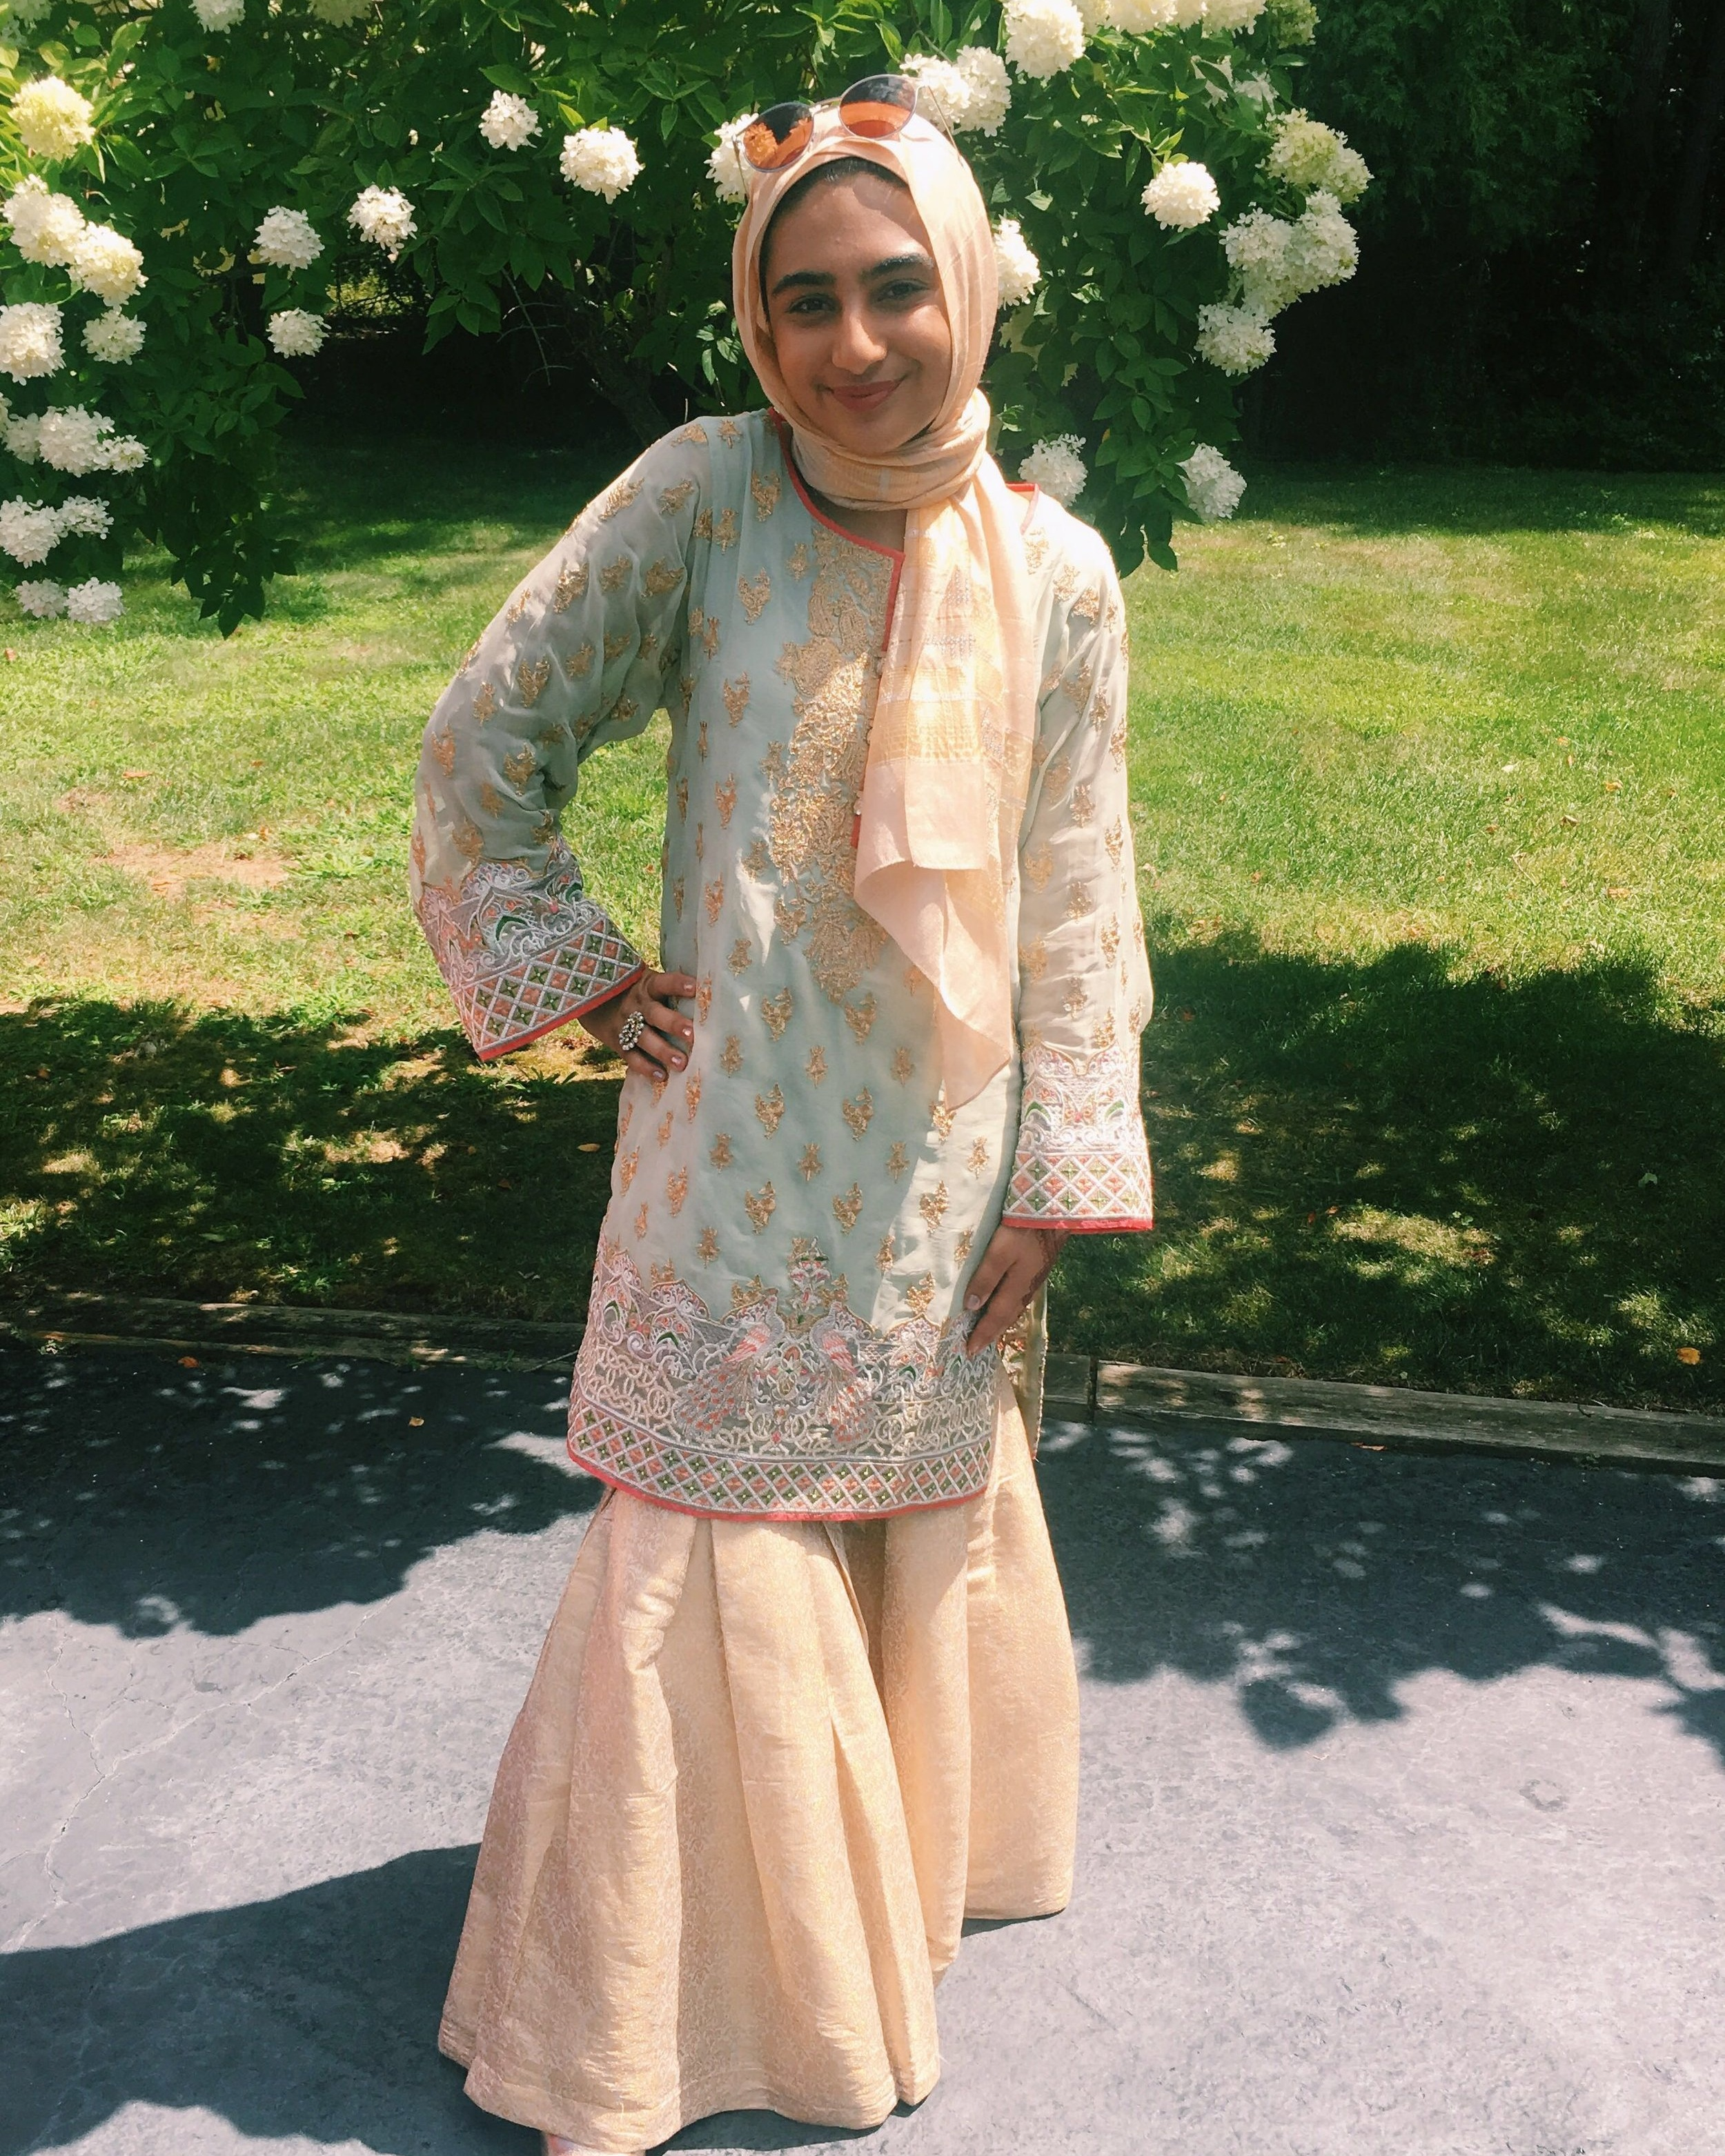 Treasurer -  Maryam Khalid  Born and raised in New Jersey, Maryam Khalid attended her first MYNA camp in the winter of 2016 in Maryland. Ever since, Maryam has fallen in love with the organization from being a camper to committee member to Finance Chair on the Midatlantic Regional Executive Committee. As she enters her term as Treasurer, Maryam will be attending Rutgers University New Brunswick-Honors College as a STEM student. Her passions include scientific research, writing, political engagement, and musical theatre. She hopes MYNA can change people's lives, as it has vastly changed hers for the better.